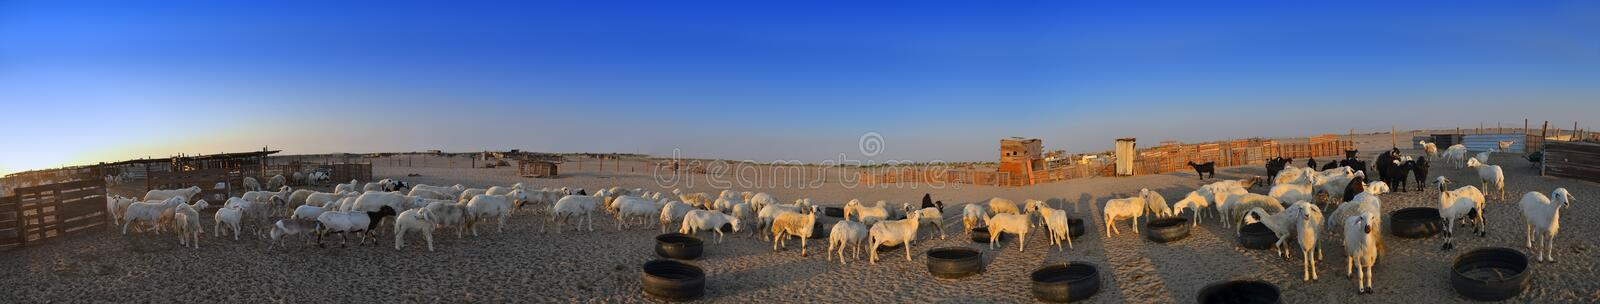 Ewes And goats farm out jeddah stock photo